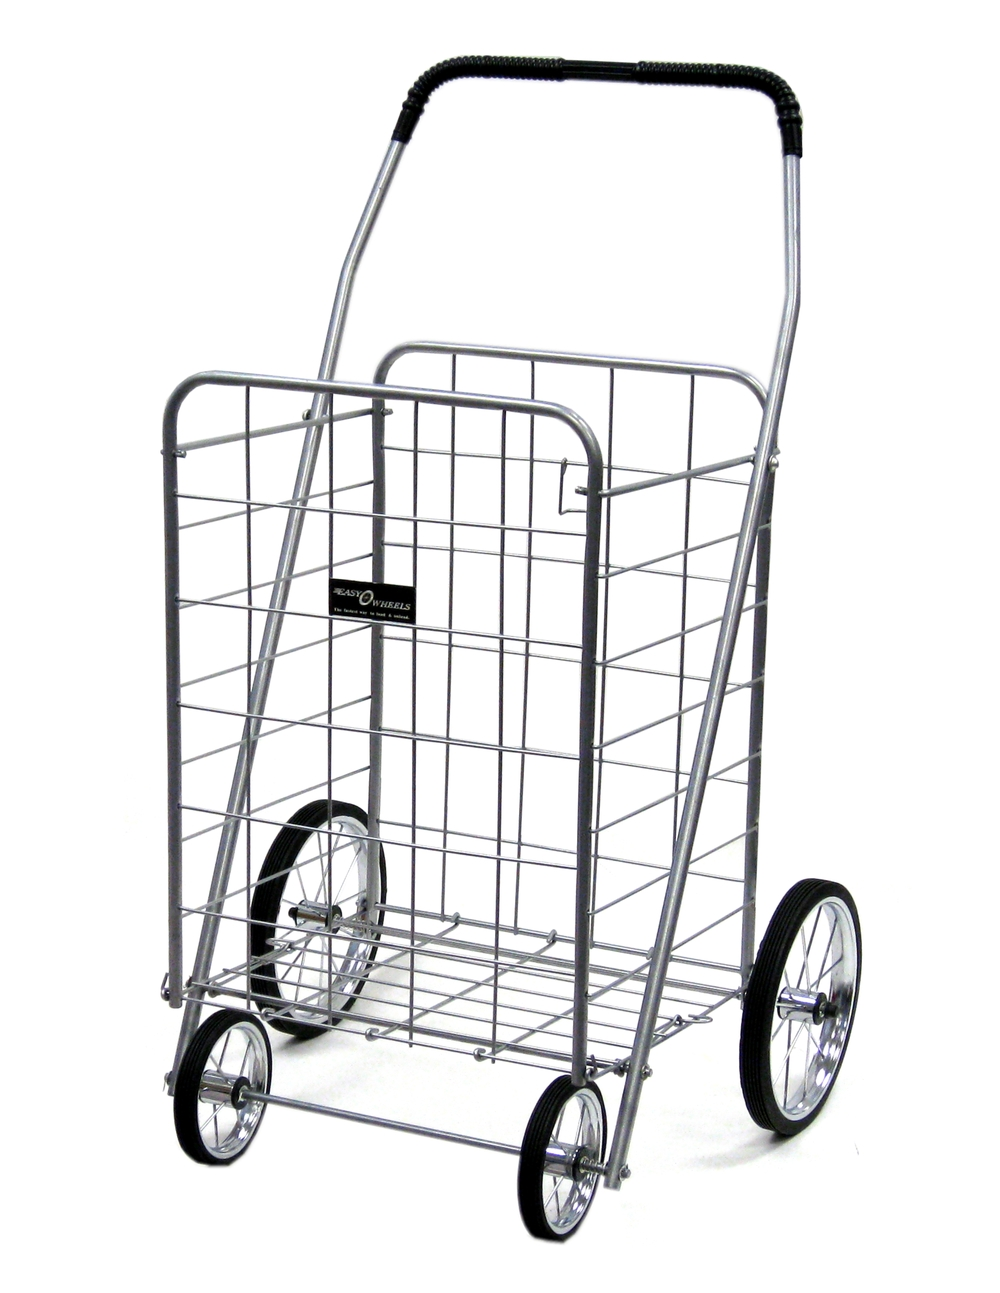 NTC001-CR Chrome jumbo shopping cart